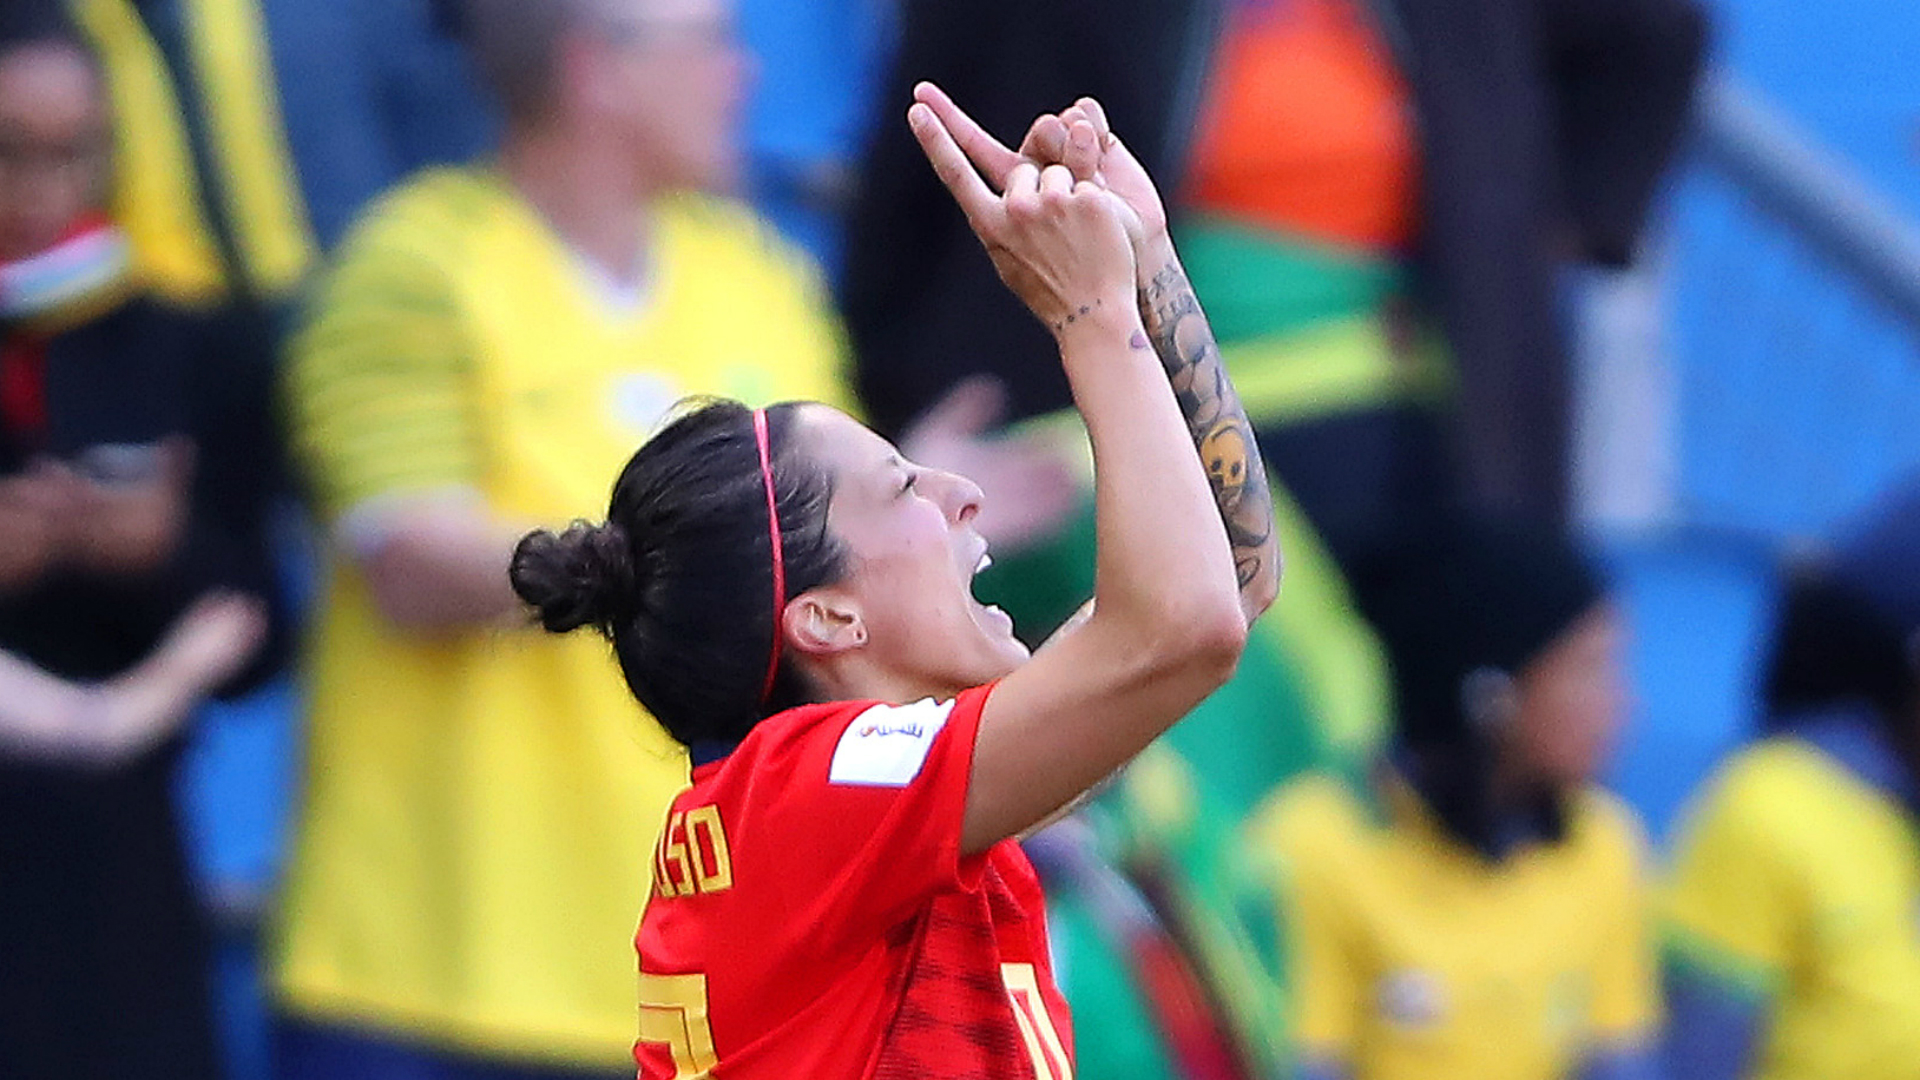 Women's World Cup 2019: Jennifer Hermoso leads Spain's comeback against South Africa